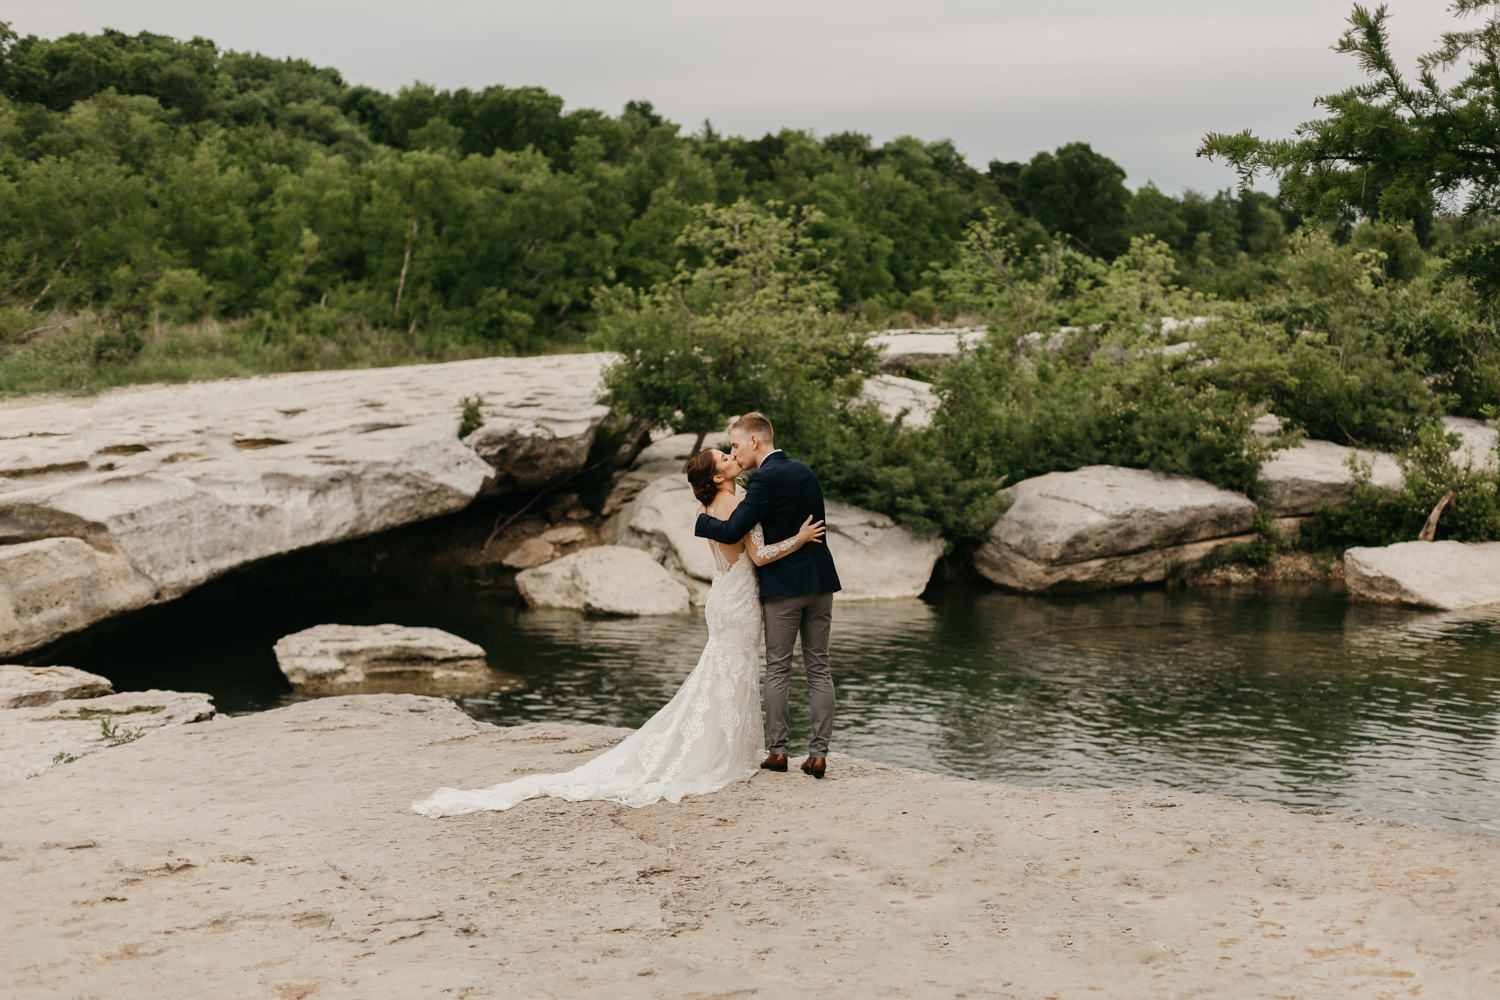 HaileyDylan_Austin Elopement Photographer Austin Wedding Photographer-122.jpg